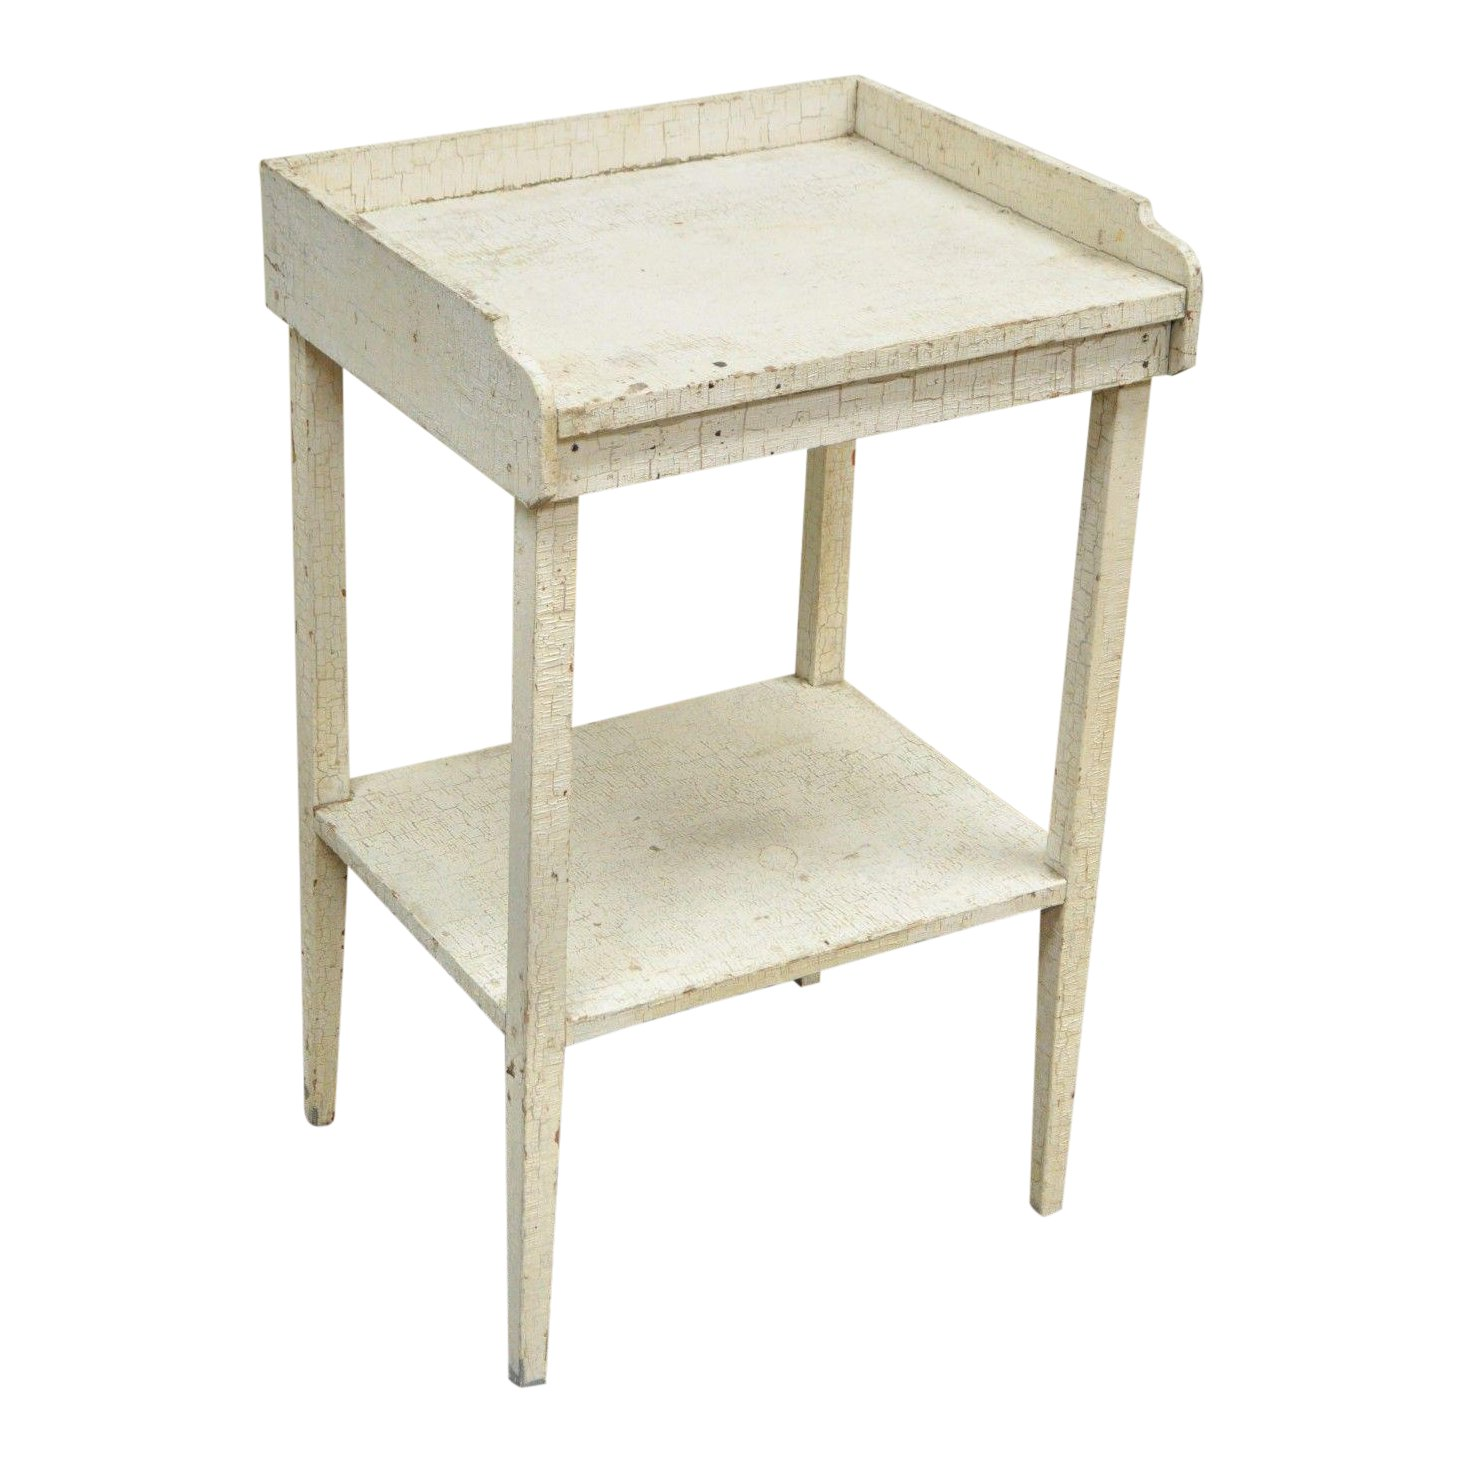 antique white distress painted pine tier accent side table rustic primitive with drawer chairish gallerie chandelier small poolside tables stained glass light patio dining sets